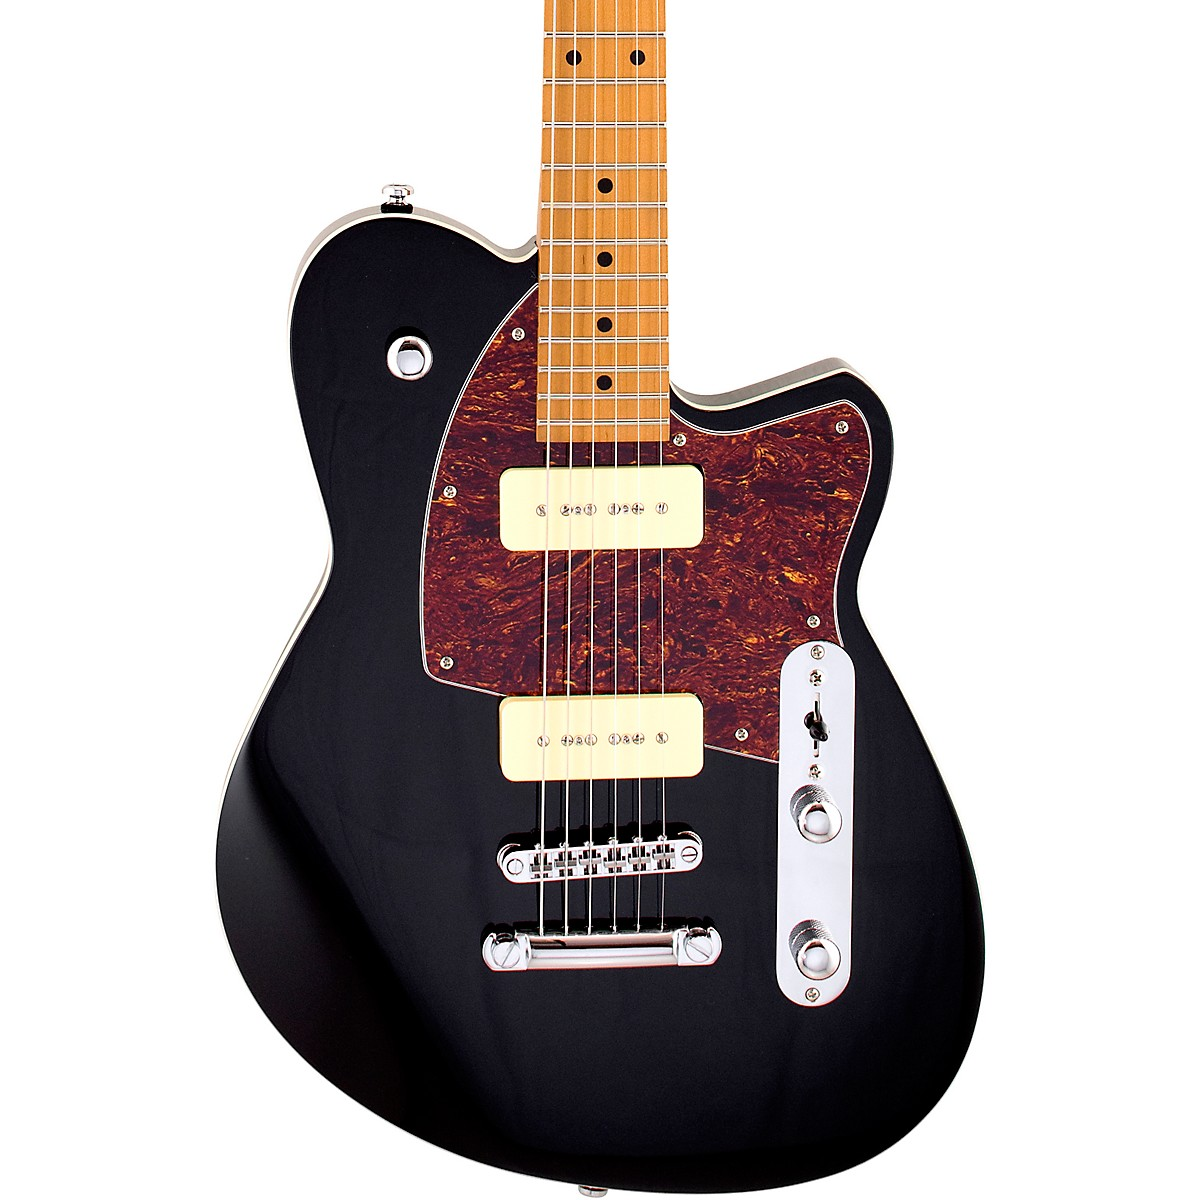 Reverend Charger 290 Roasted Maple Fingerboard Electric Guitar